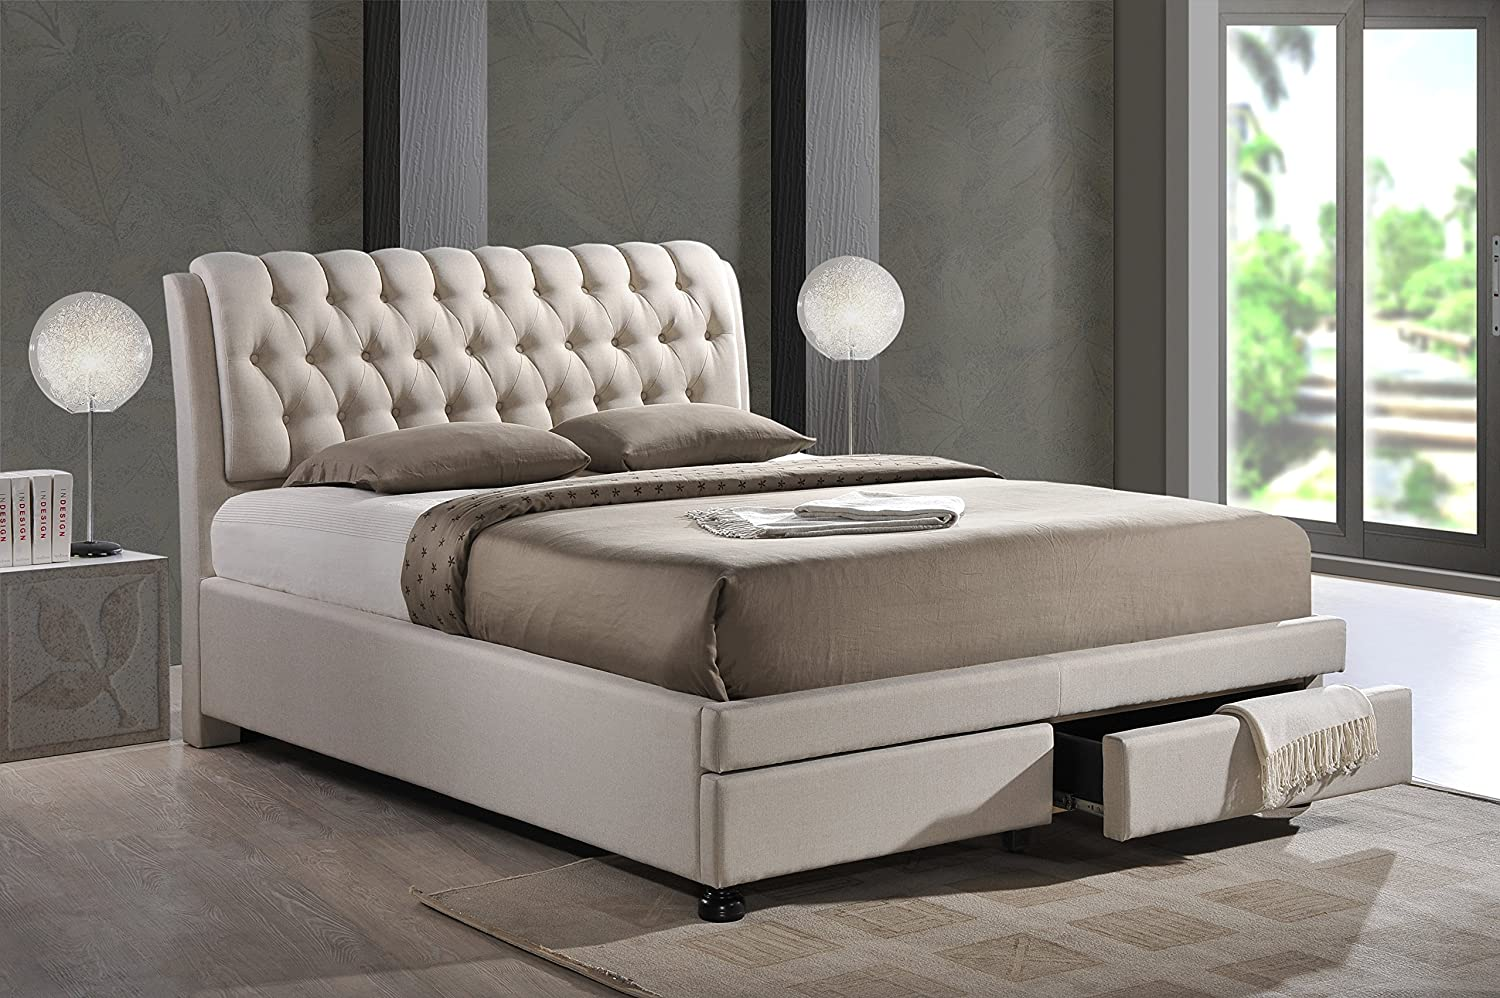 view storage blog making vs springs beds queen us l drawers simplicity sim larger bed platform box mattress with